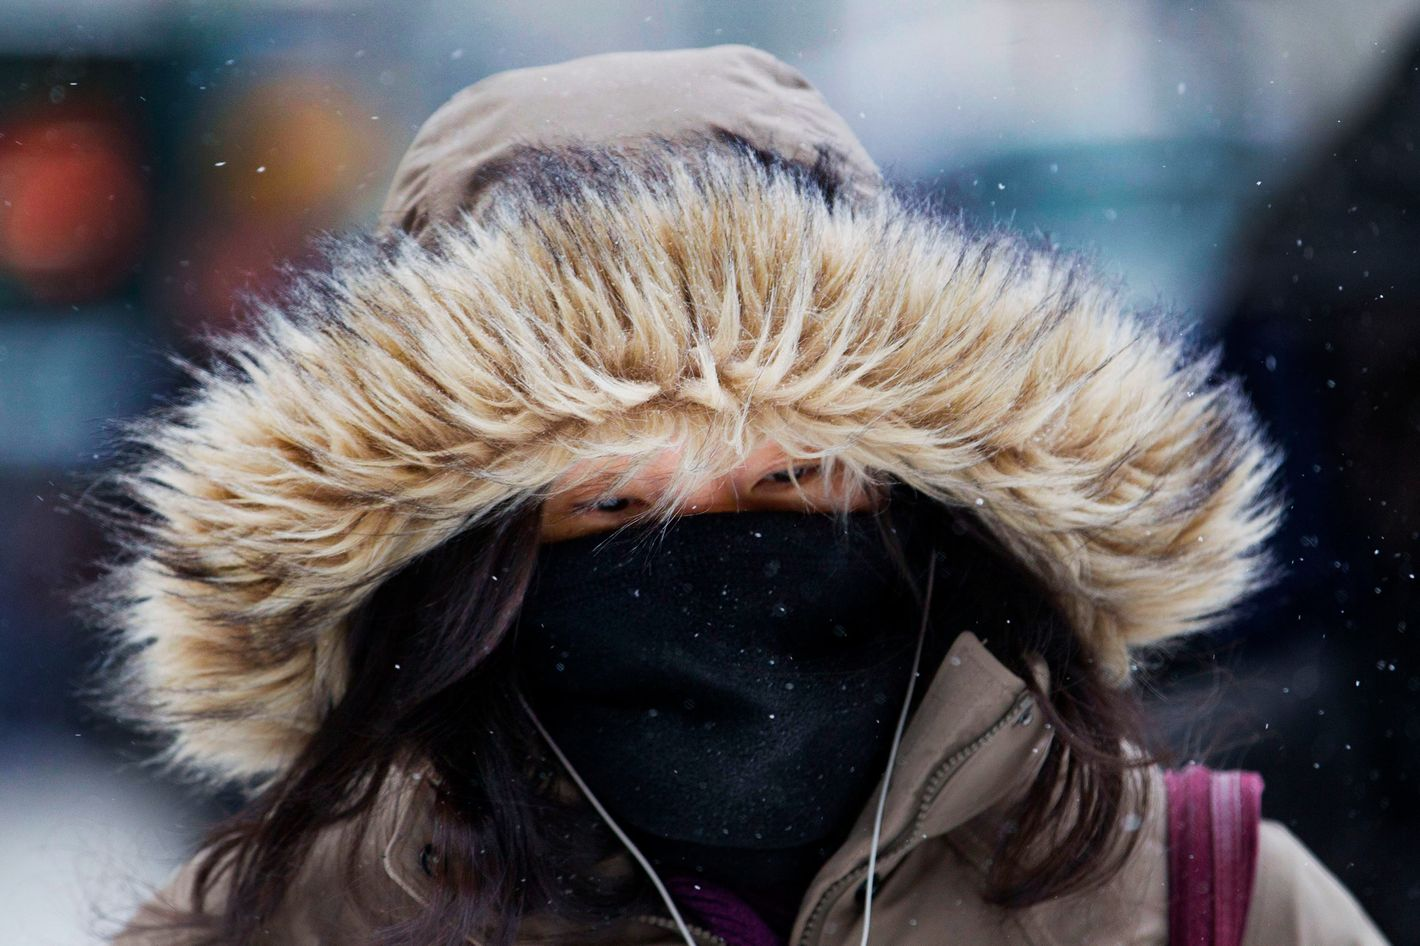 A pedestrian covers her face to keep warm in New York, U.S., on Friday, Jan. 3, 2014. Wind-driven snow whipped through New Yorks streets and piled up in Boston as a fast-moving storm brought near-blizzard conditions to parts of the Northeast, closing roads, grounding flights and shutting schools. Photographer: Jin Lee/Bloomberg via Getty Images